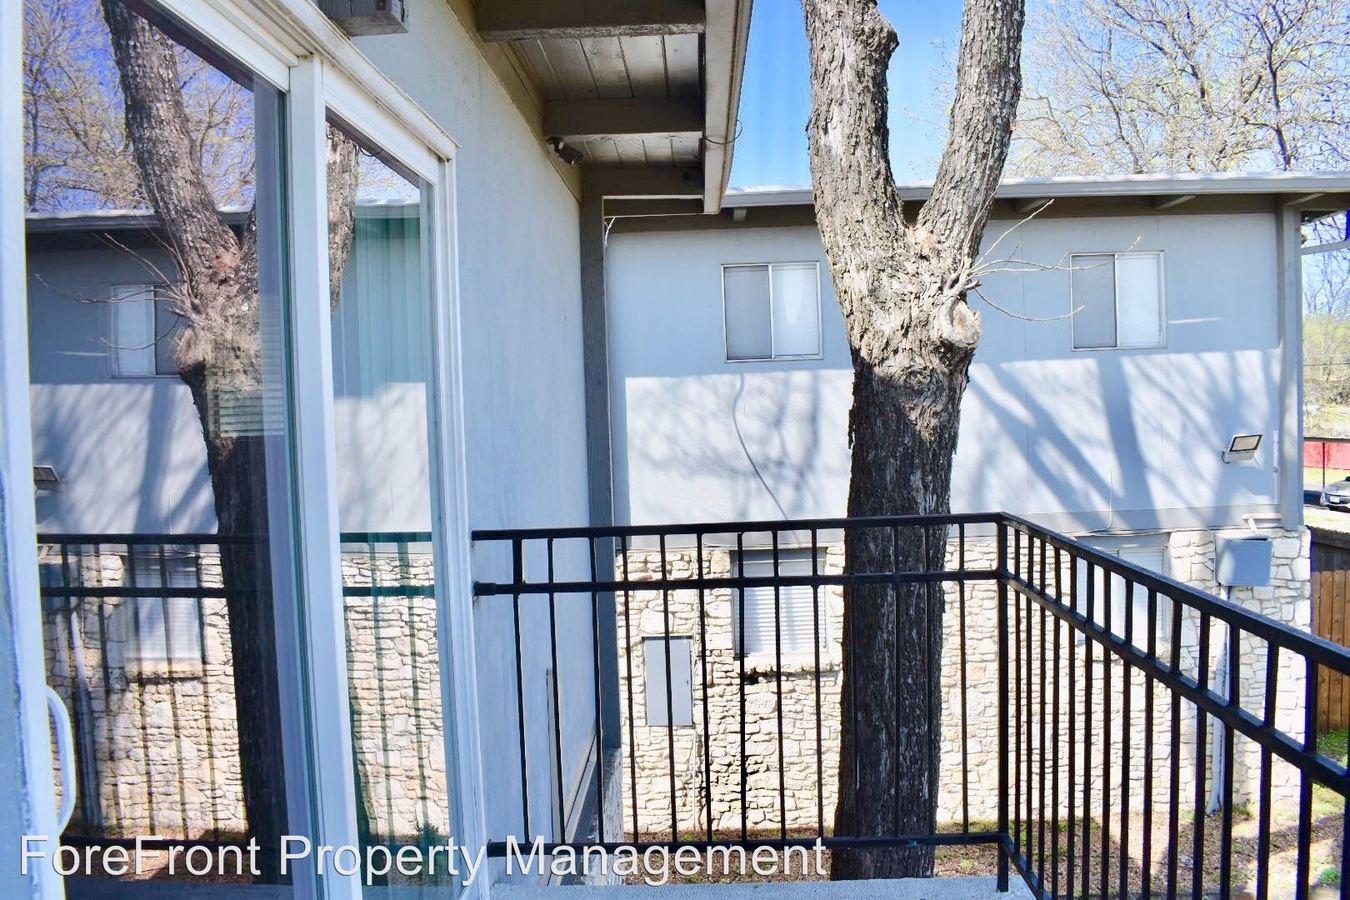 1 Bedroom 1 Bathroom Apartment for rent at 731-743 Byrnes Dr in San Antonio, TX